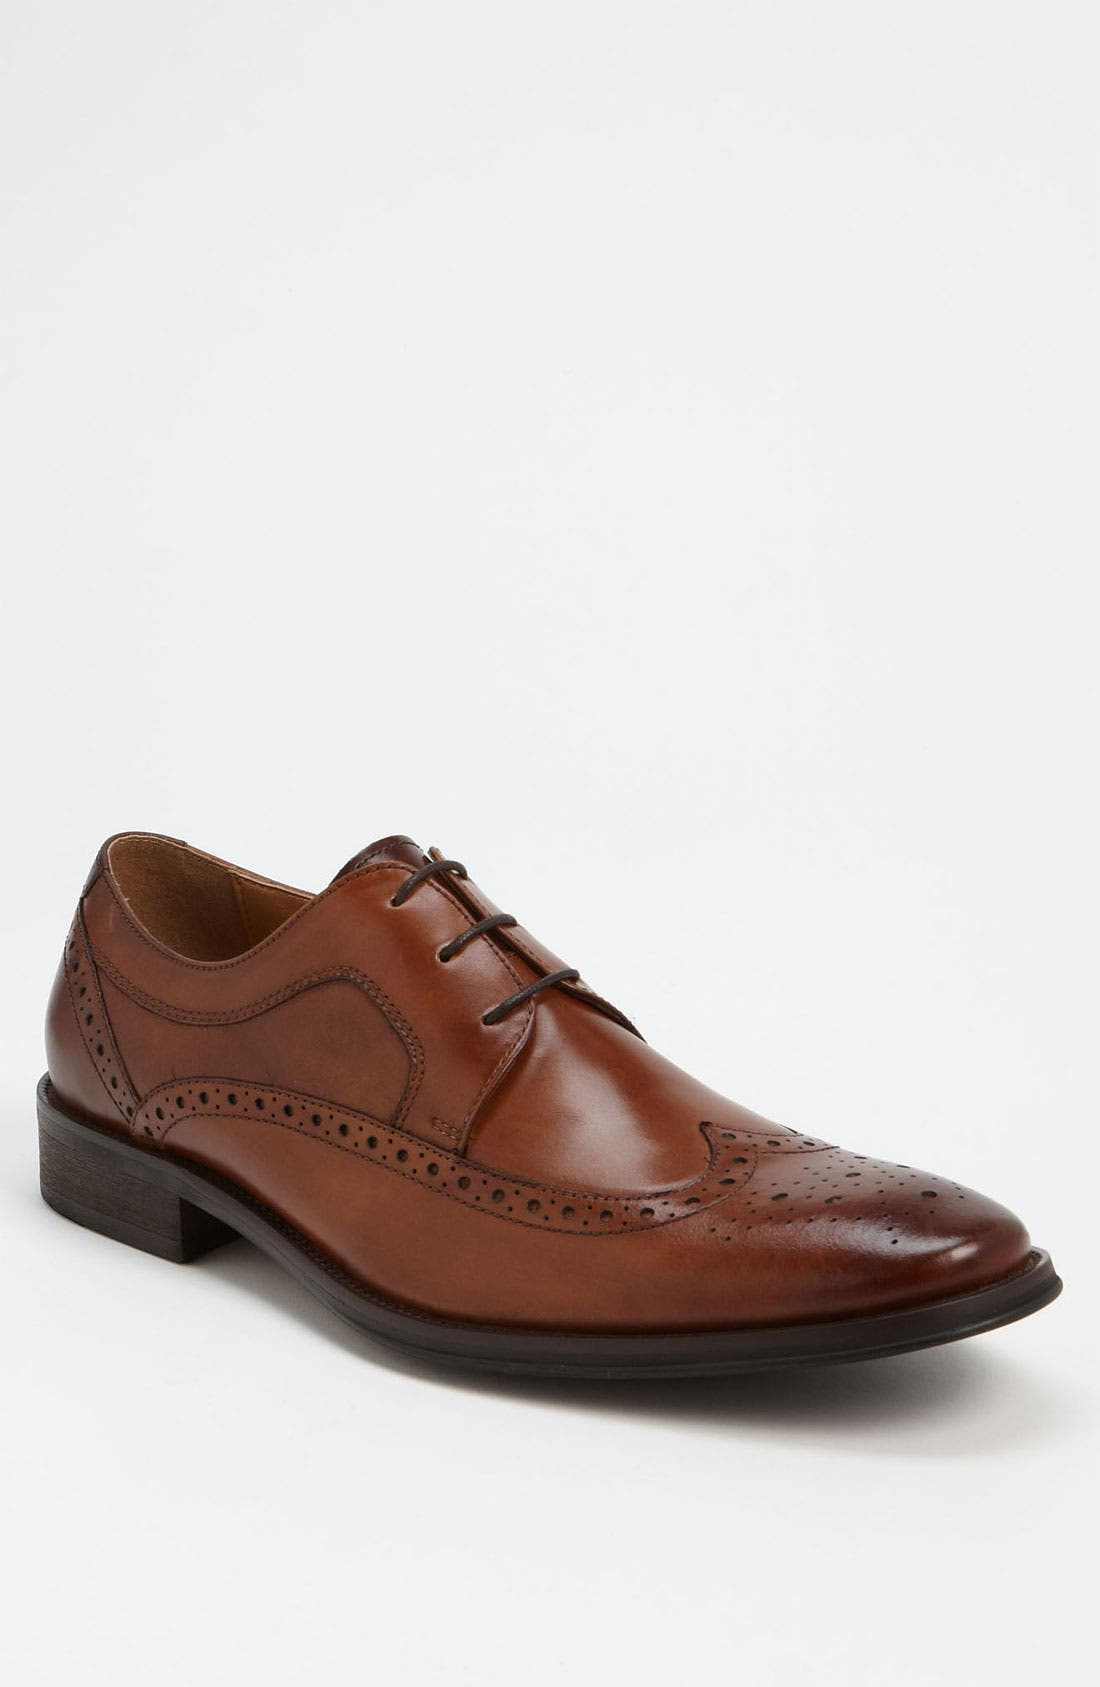 Main Image - ALDO 'Brownlie' Wingtip Oxford